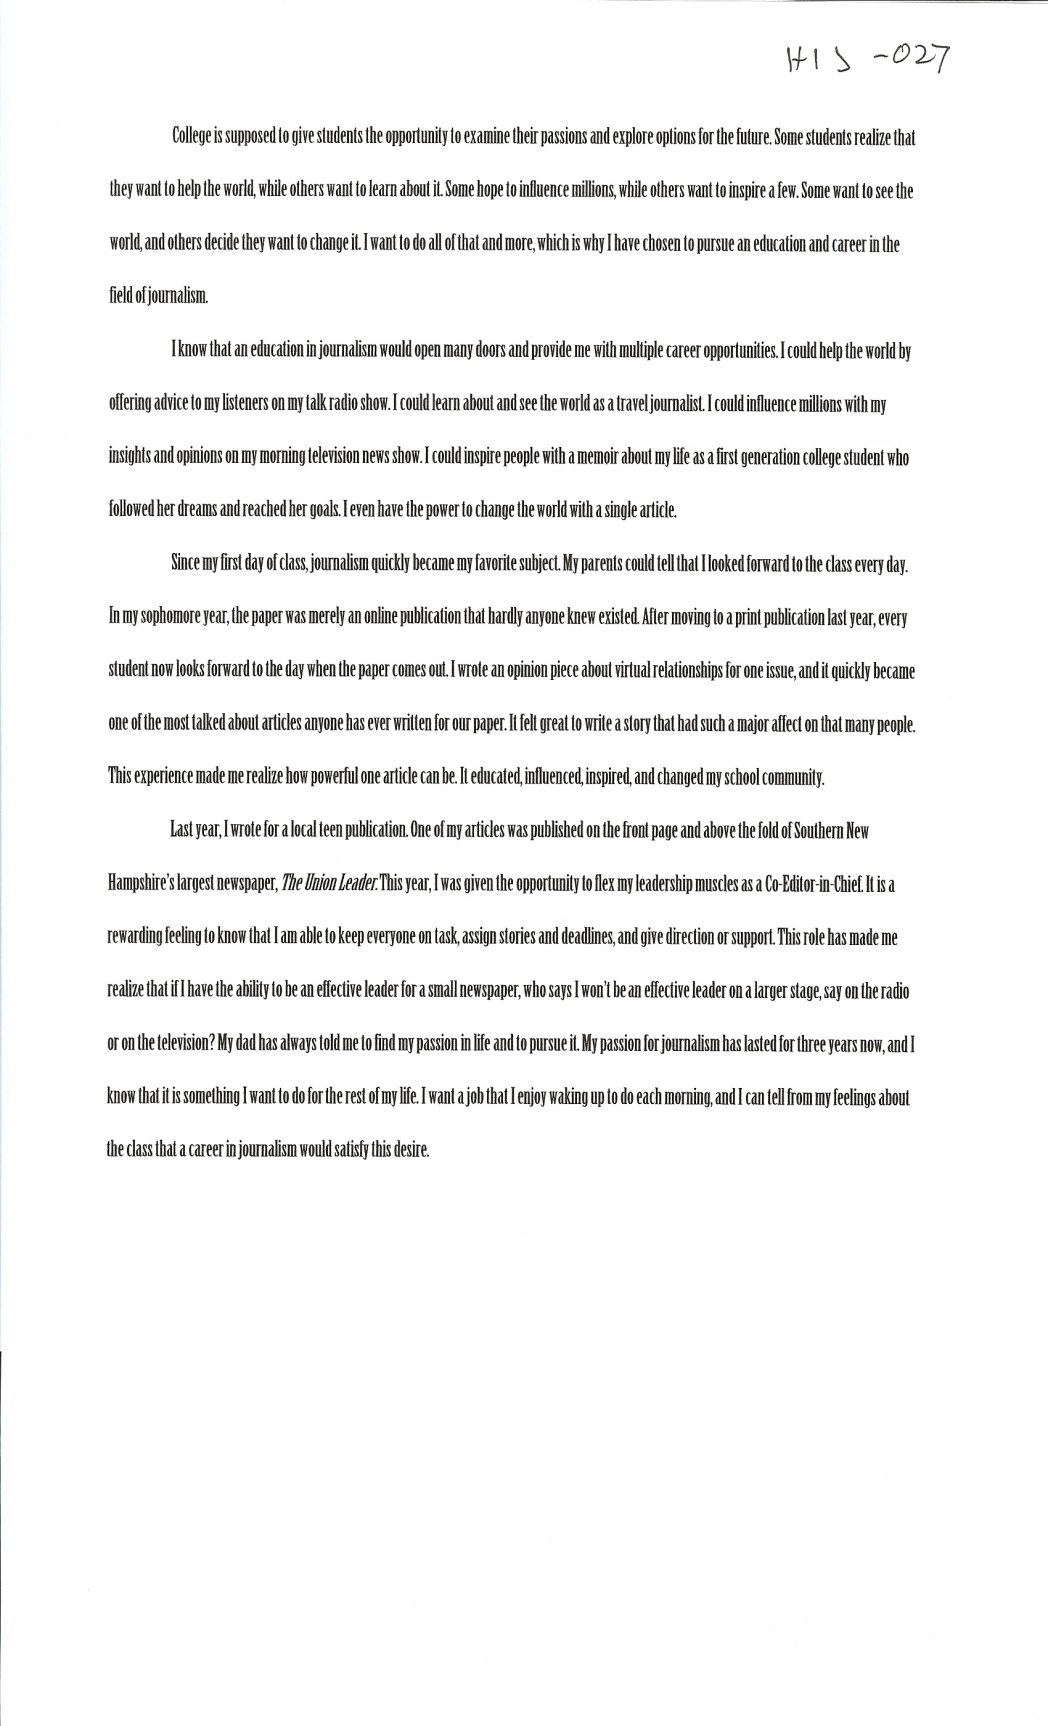 005 Essay Example The Value Of College Education For Scholarship Alexa Serrecchia Sample Classification On 1048x1726 Archaicawful Life Time In Human Full